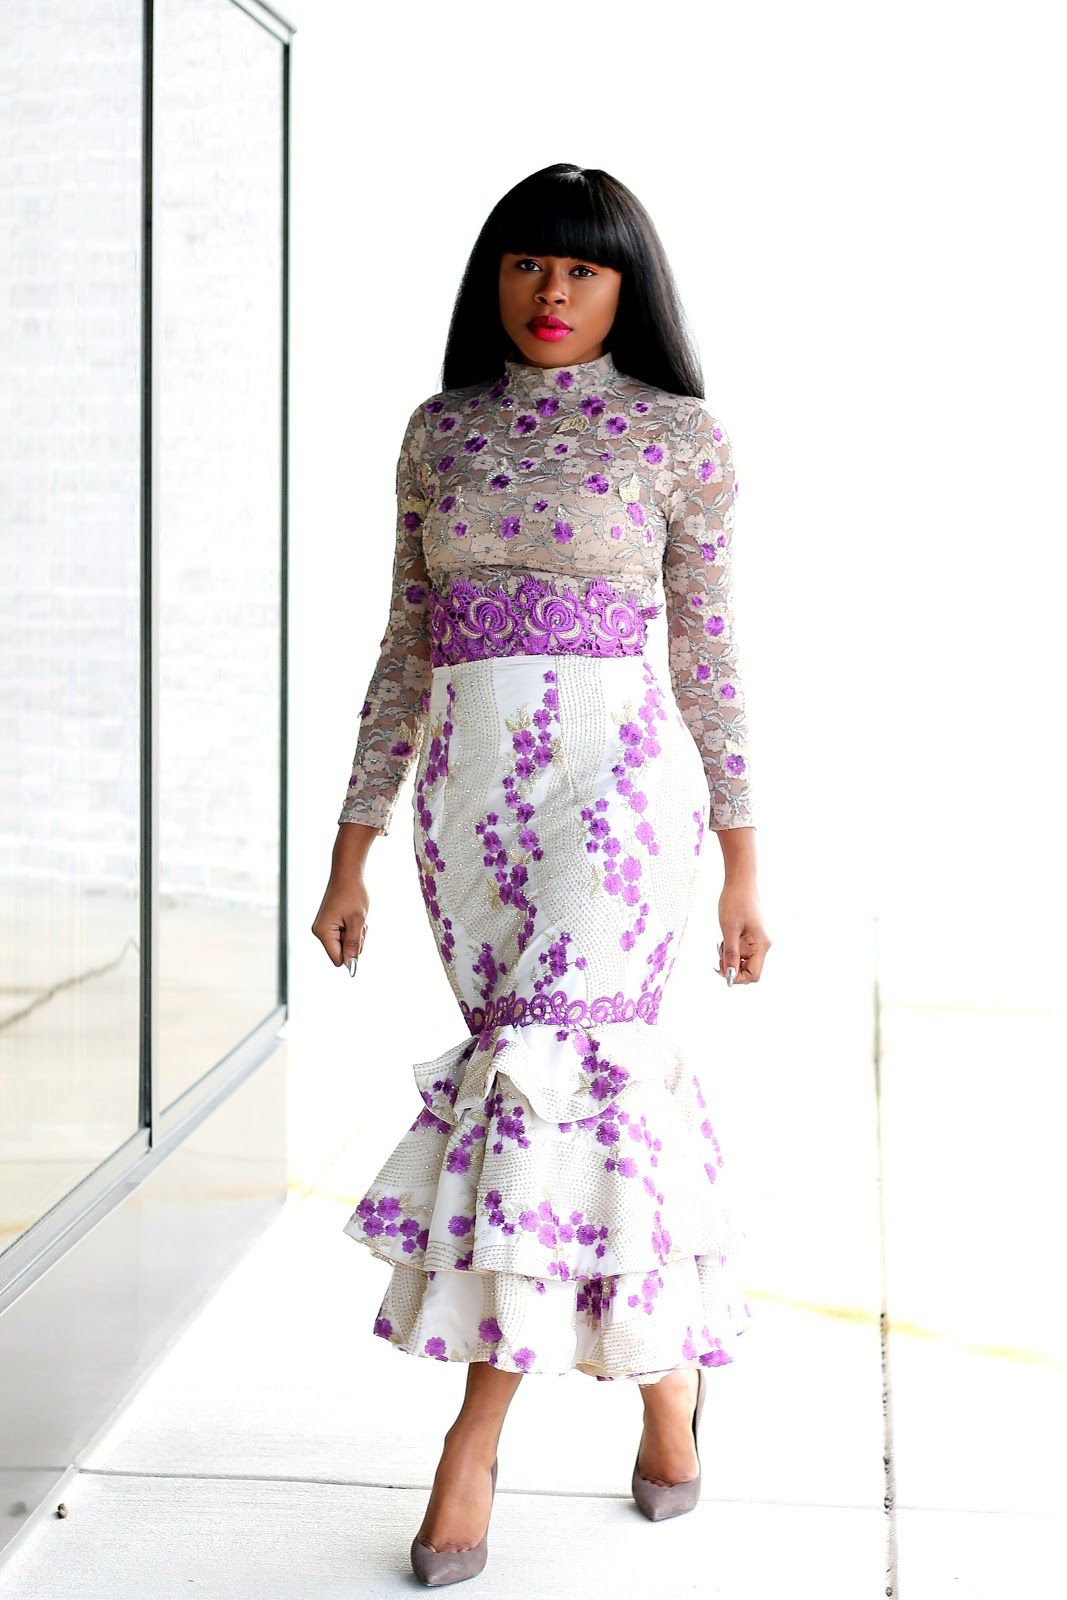 Nigerian Wedding Guest | TOMGFASHION